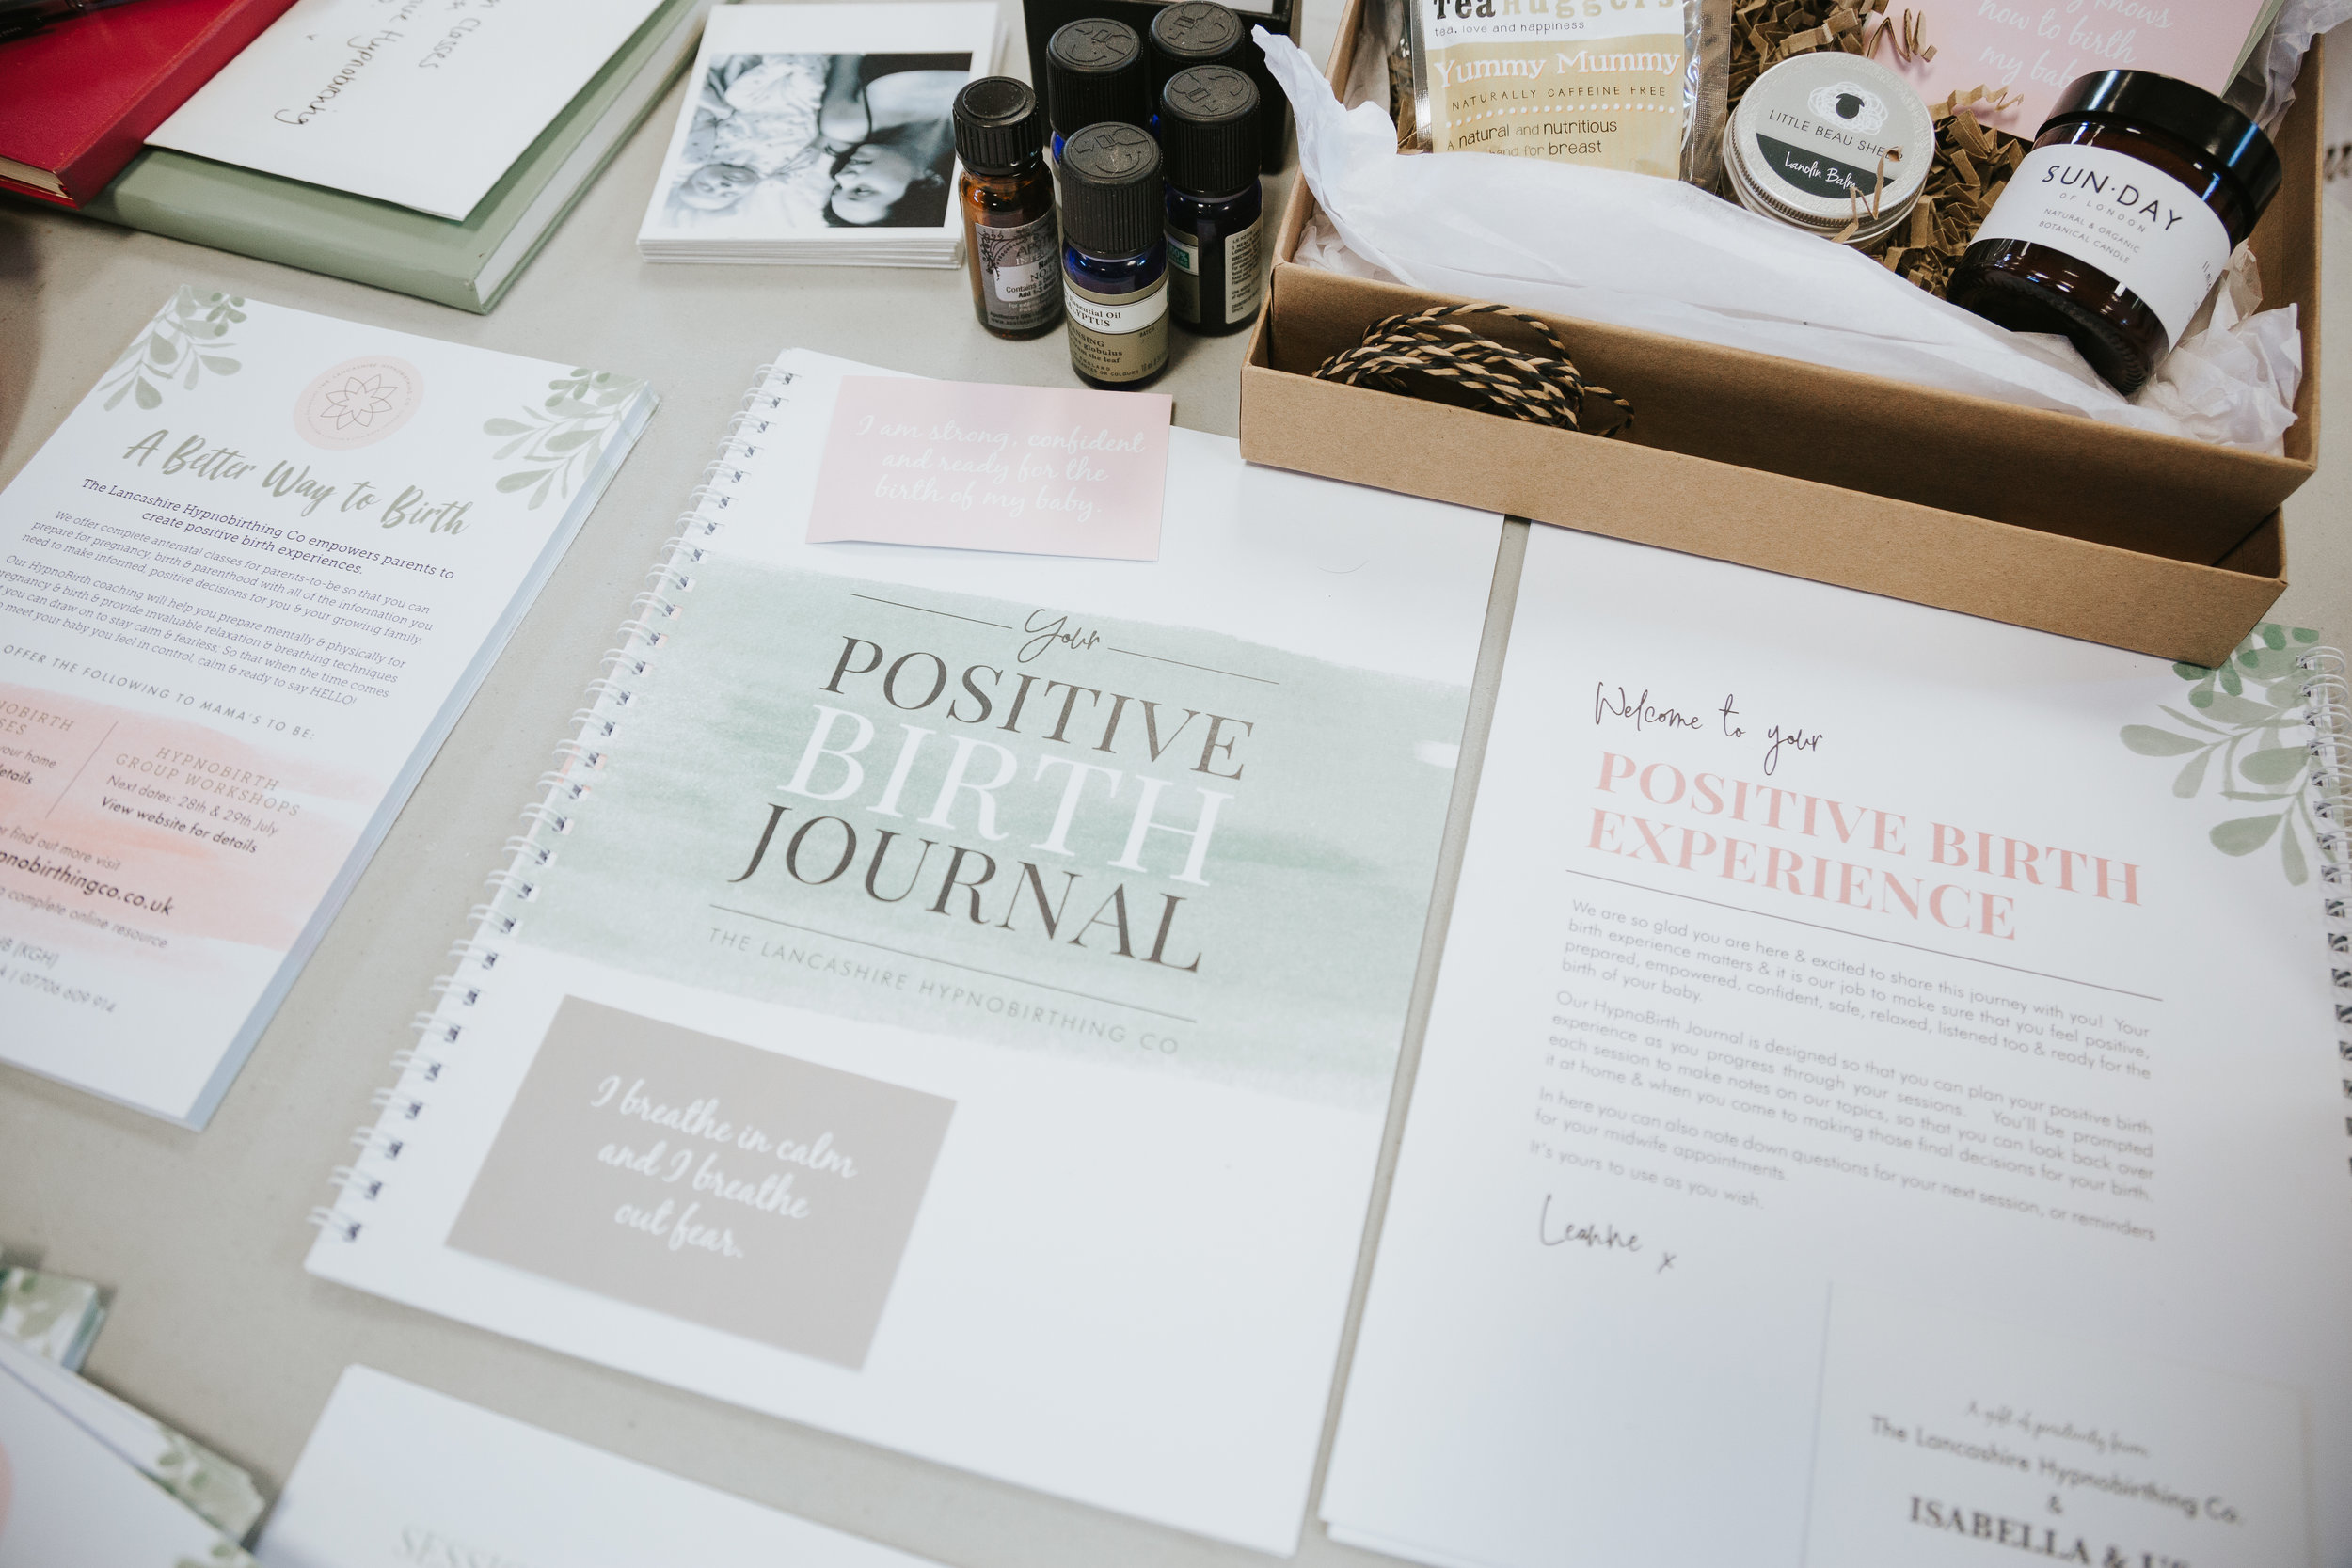 All our parents-to-be receive The Positive Birth Journal and a copy of The KG Hypnobirthing Book as well as a pack of positive birth affirmations to complement the classes & enable you to practice & prepare at home.